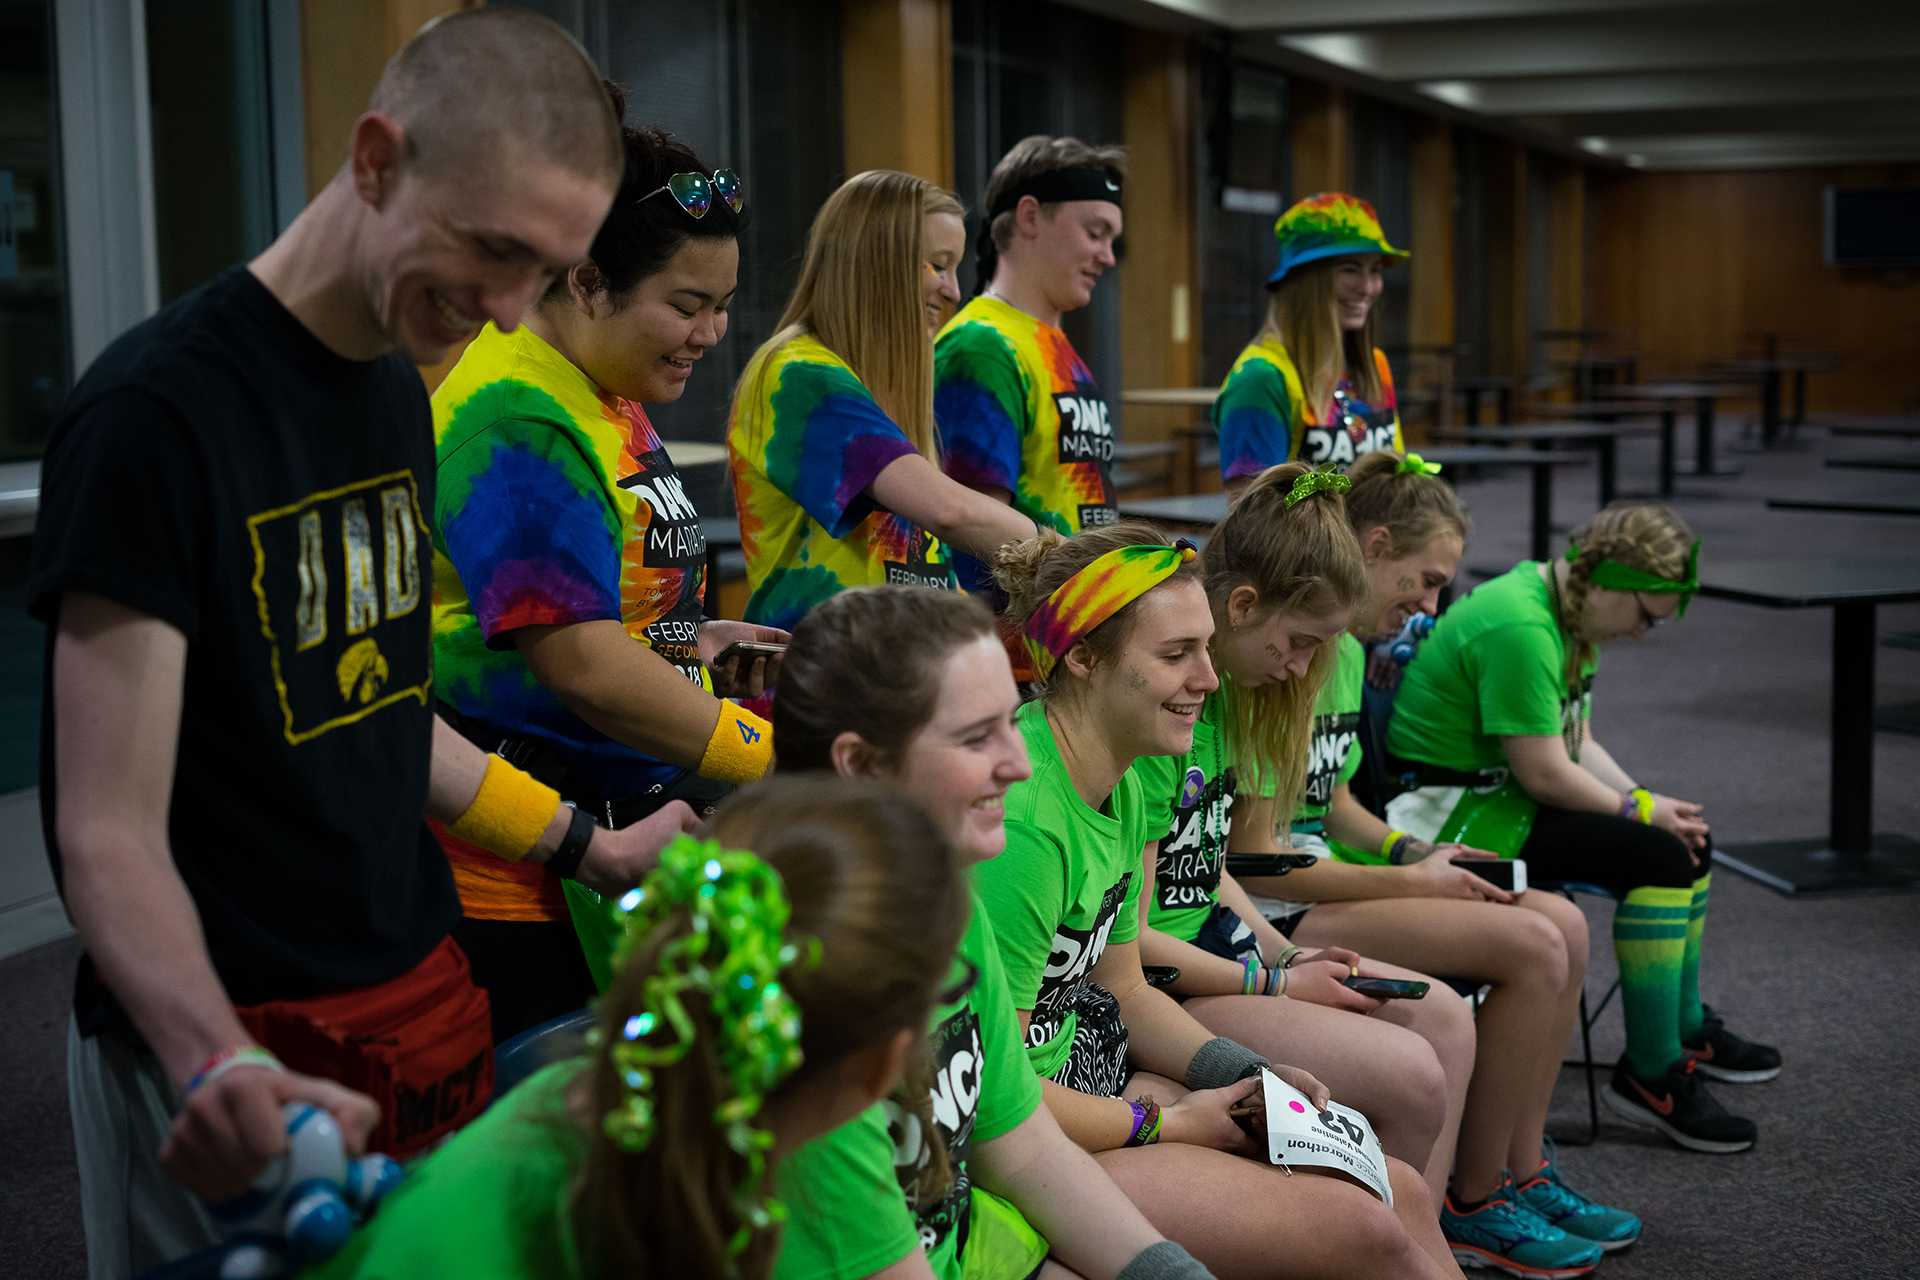 Morale Captain Assistants give participants back massages at the 24th Annual Dance Marathon put on by the University of Iowa on Saturday, Feb. 3, 2018. (Matthew Finley/The Daily Iowan)